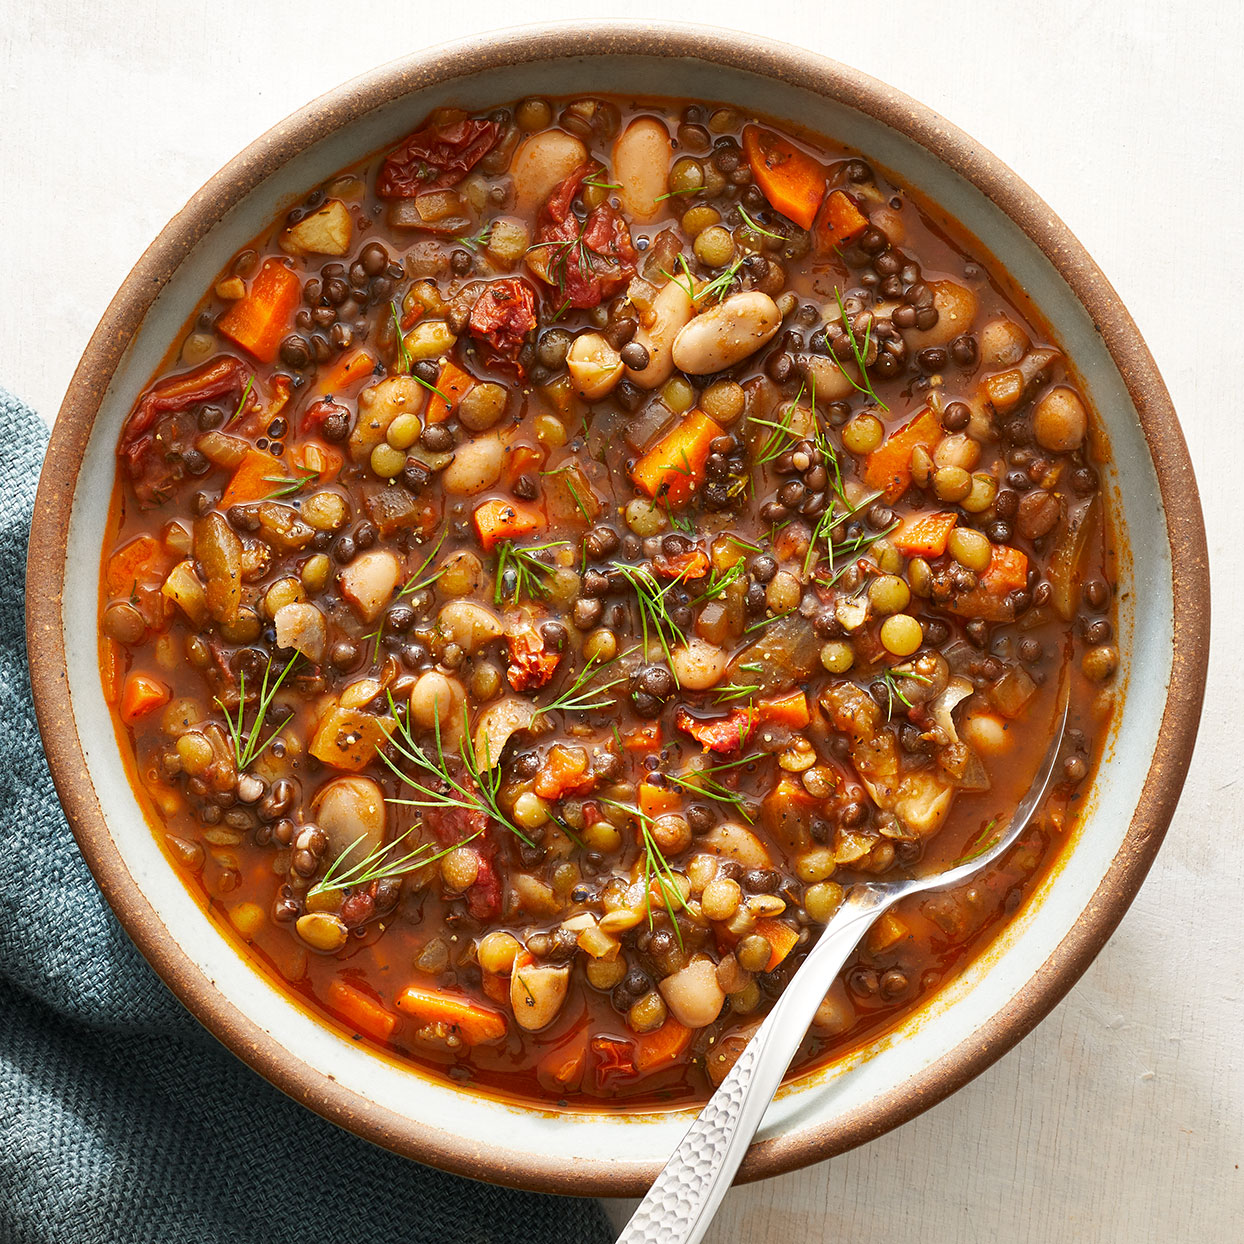 Heart-Healthy Lentil Recipes